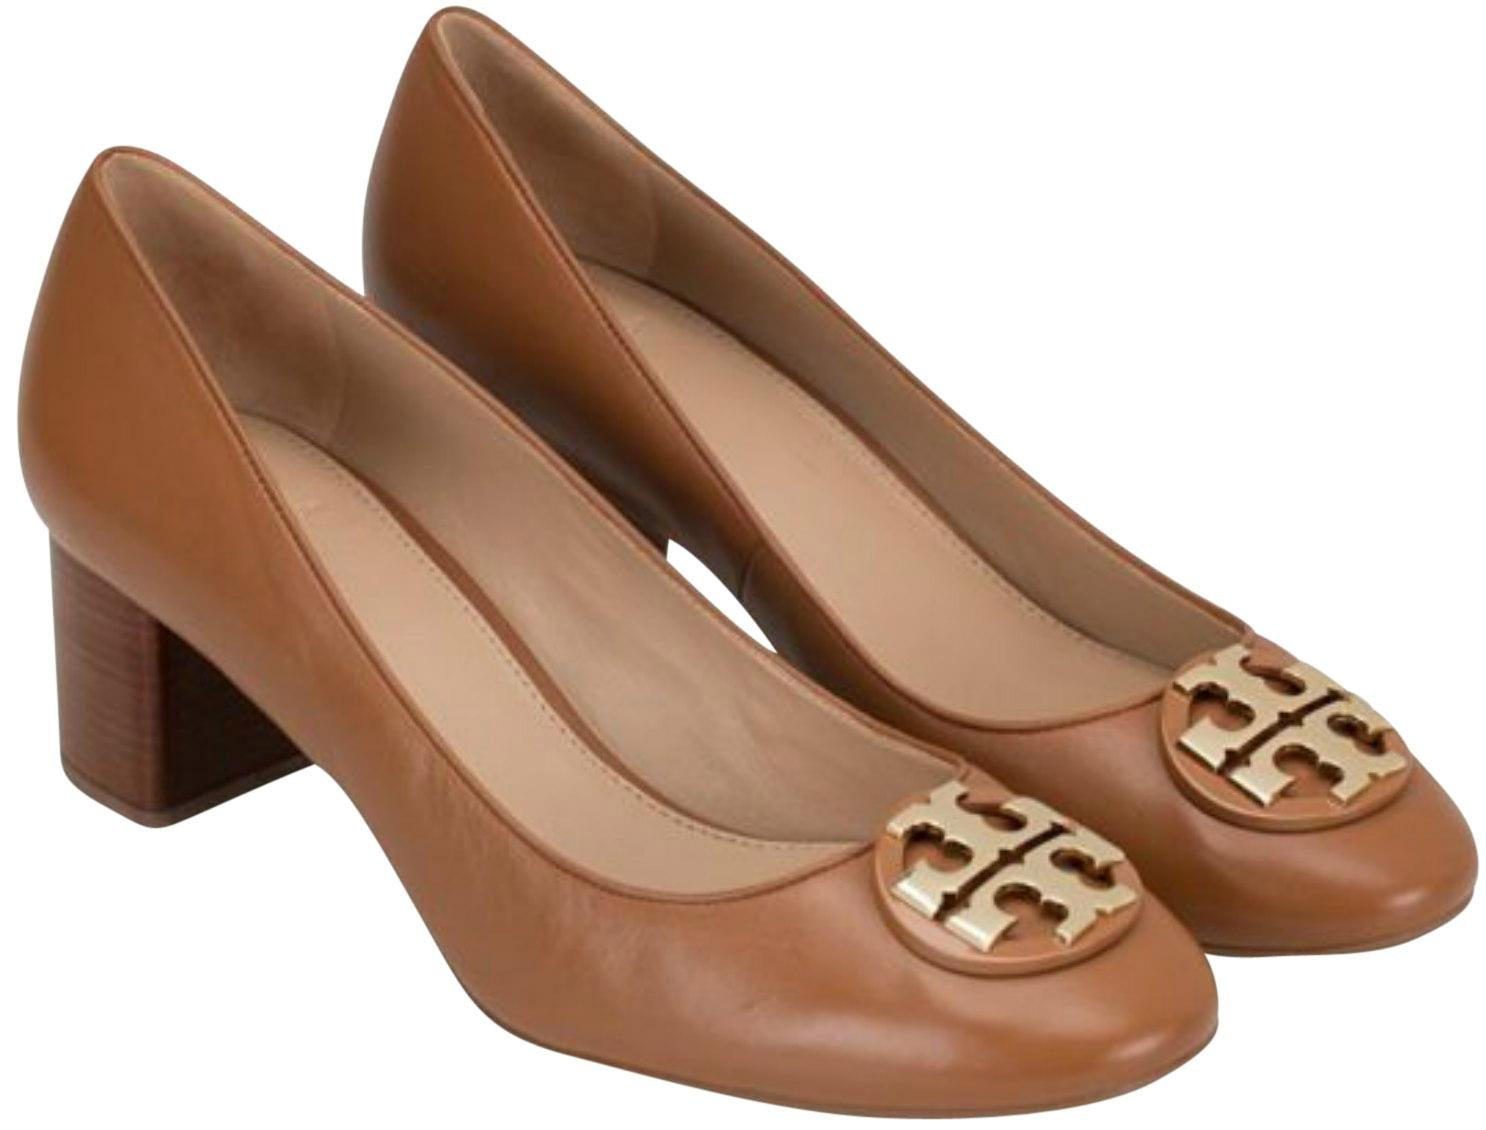 c8b983b781d3 Tory Burch Royal Tan Gold Janey Janey Janey 50mm Calf Leather Pumps Size US  7 Regular (M